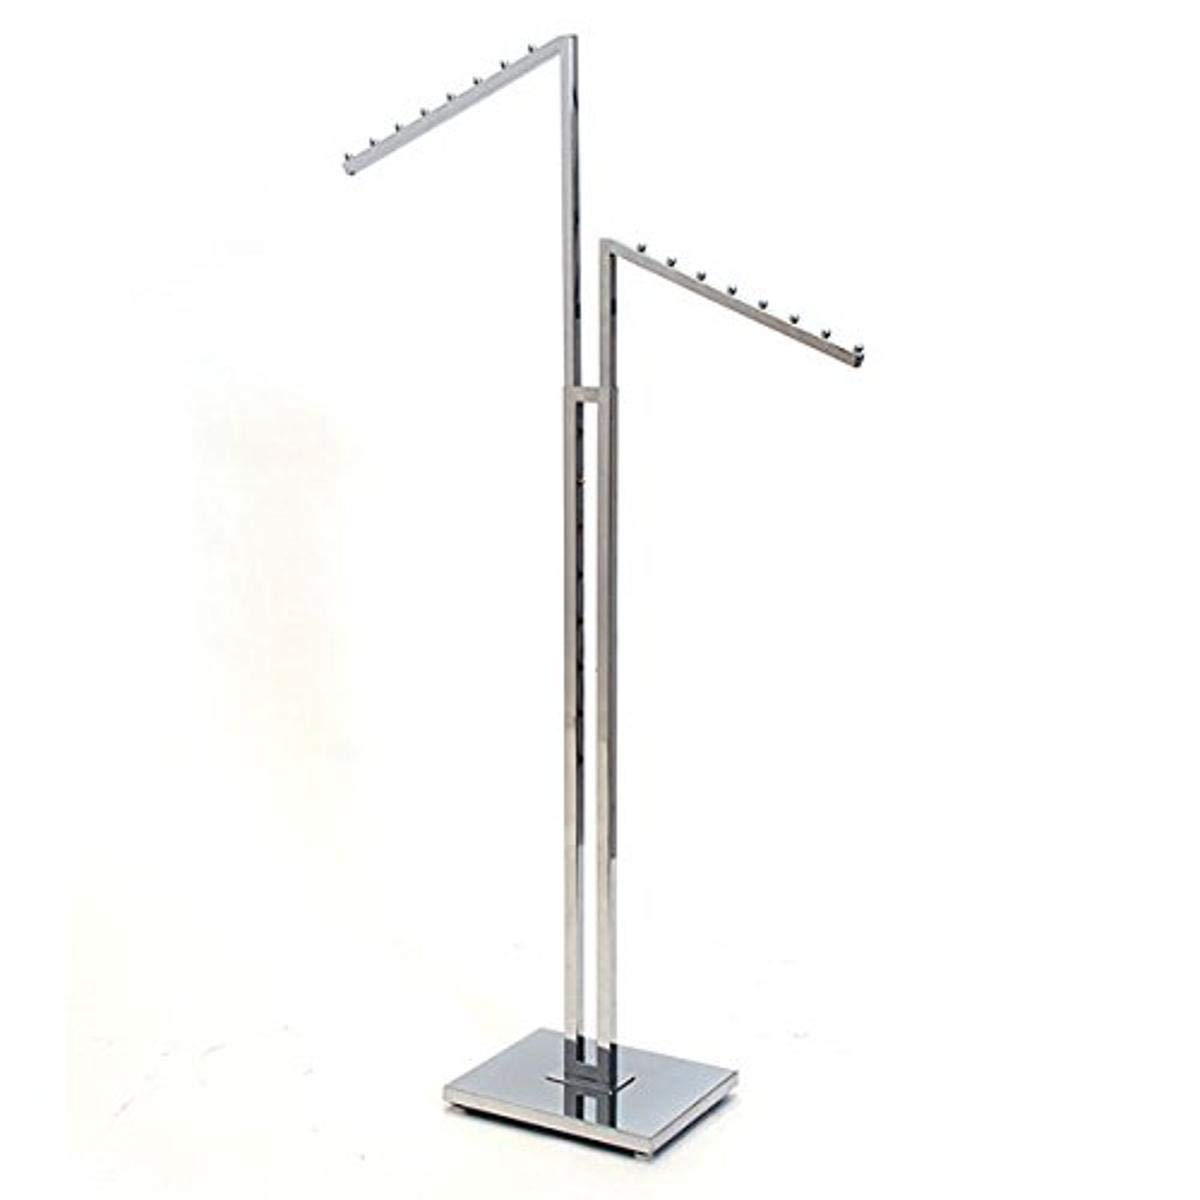 Max 54% OFF KC Store Max 90% OFF Fixtures 28203 2-Way Garment Arms 2 Rack Sq Slant with